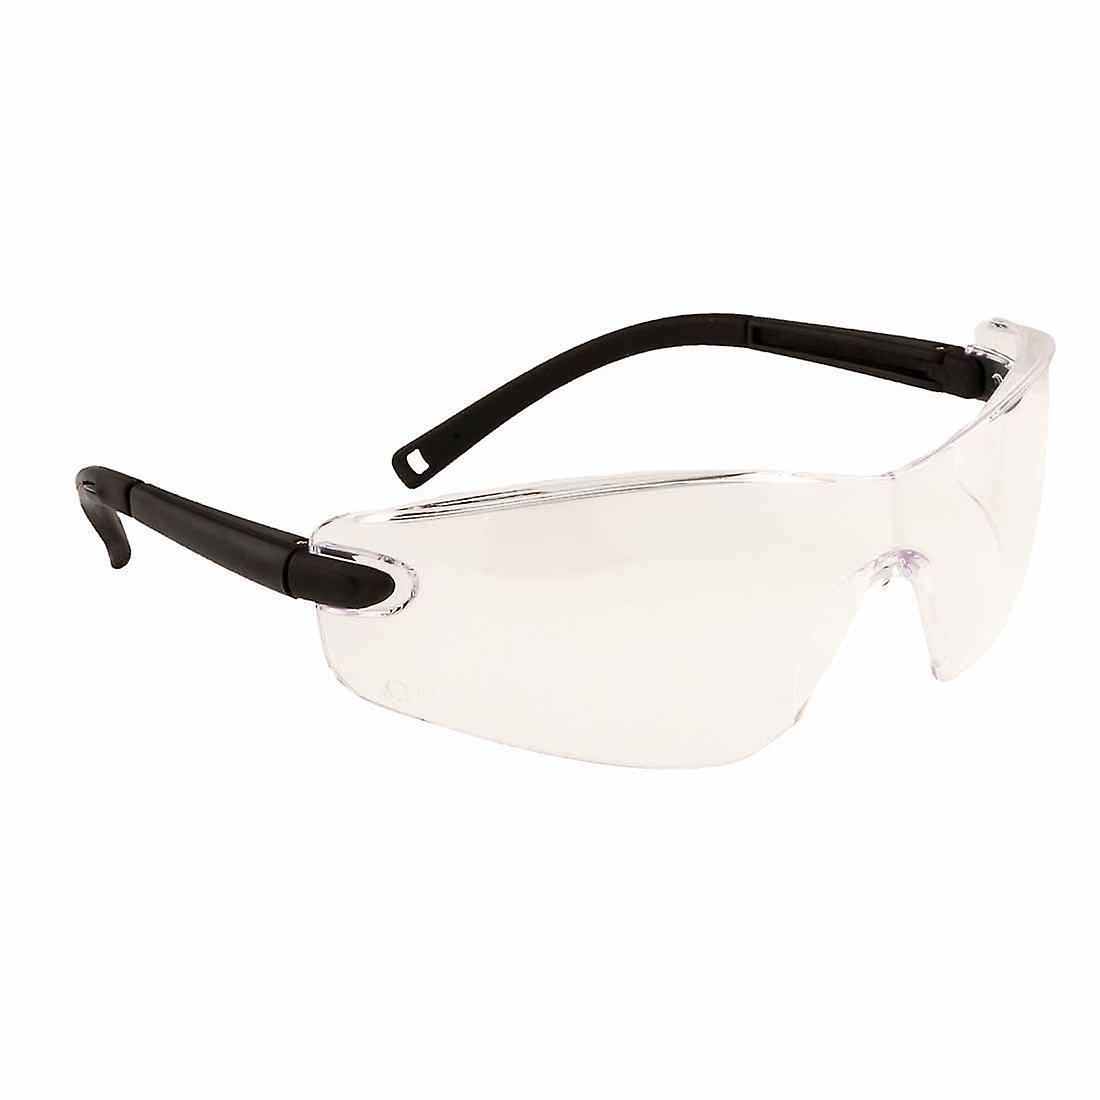 Portwest - Profile Safety Spectacle Clear Regular